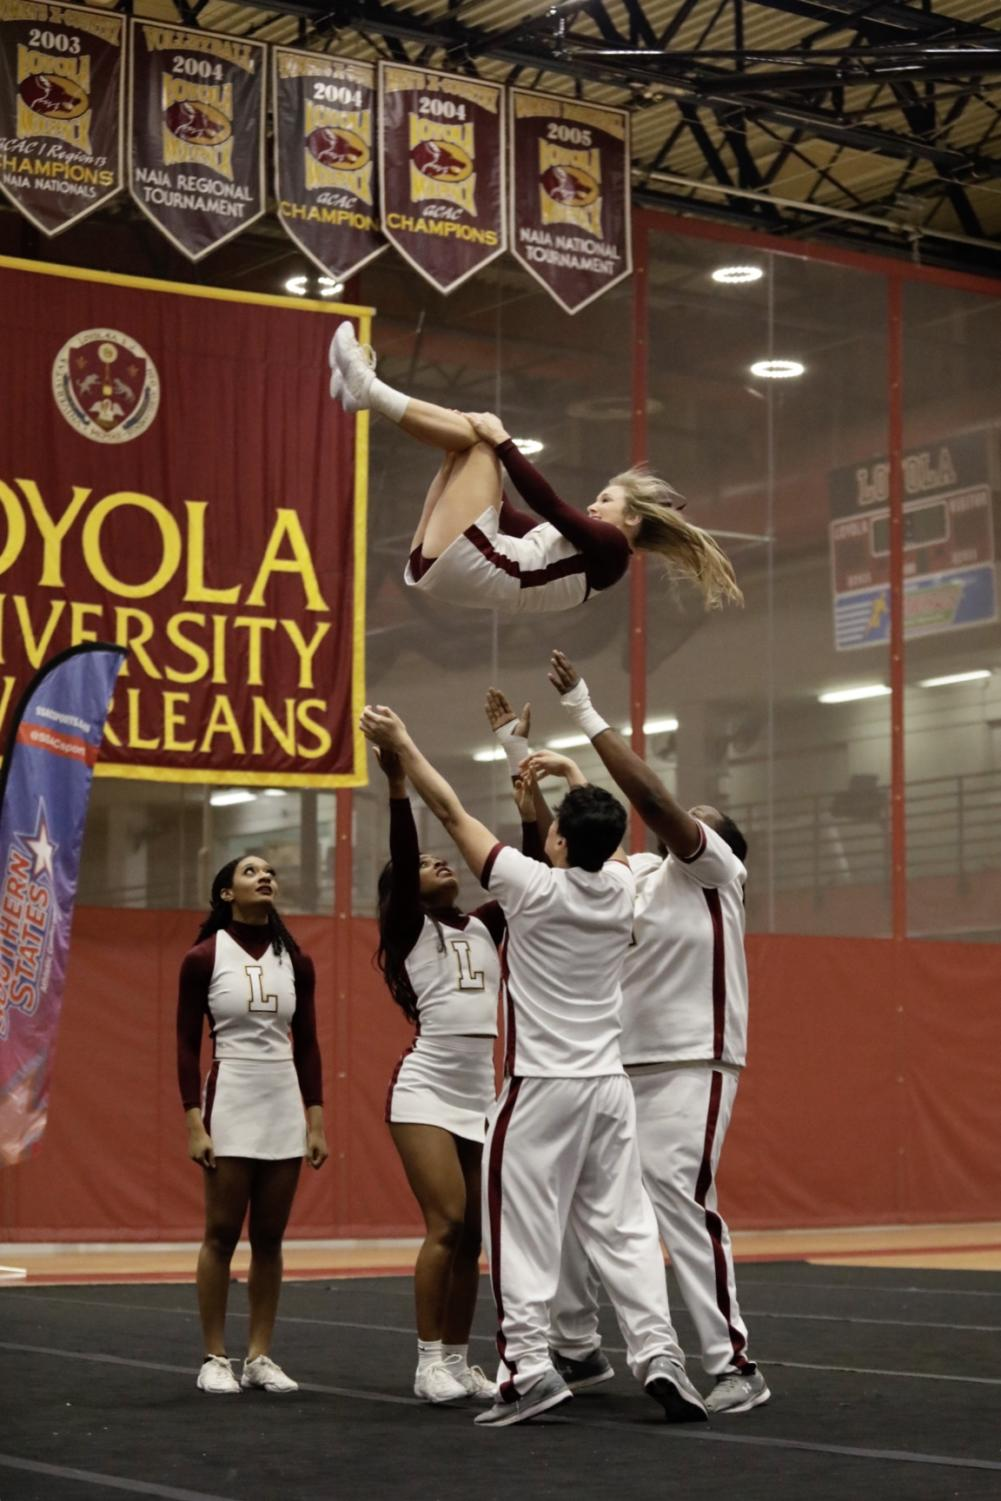 Loyola%27s+cheer+team+tosses+up+a+cheerleader+during+their+routine.+Photo+credit%3A+Ariel+Landry